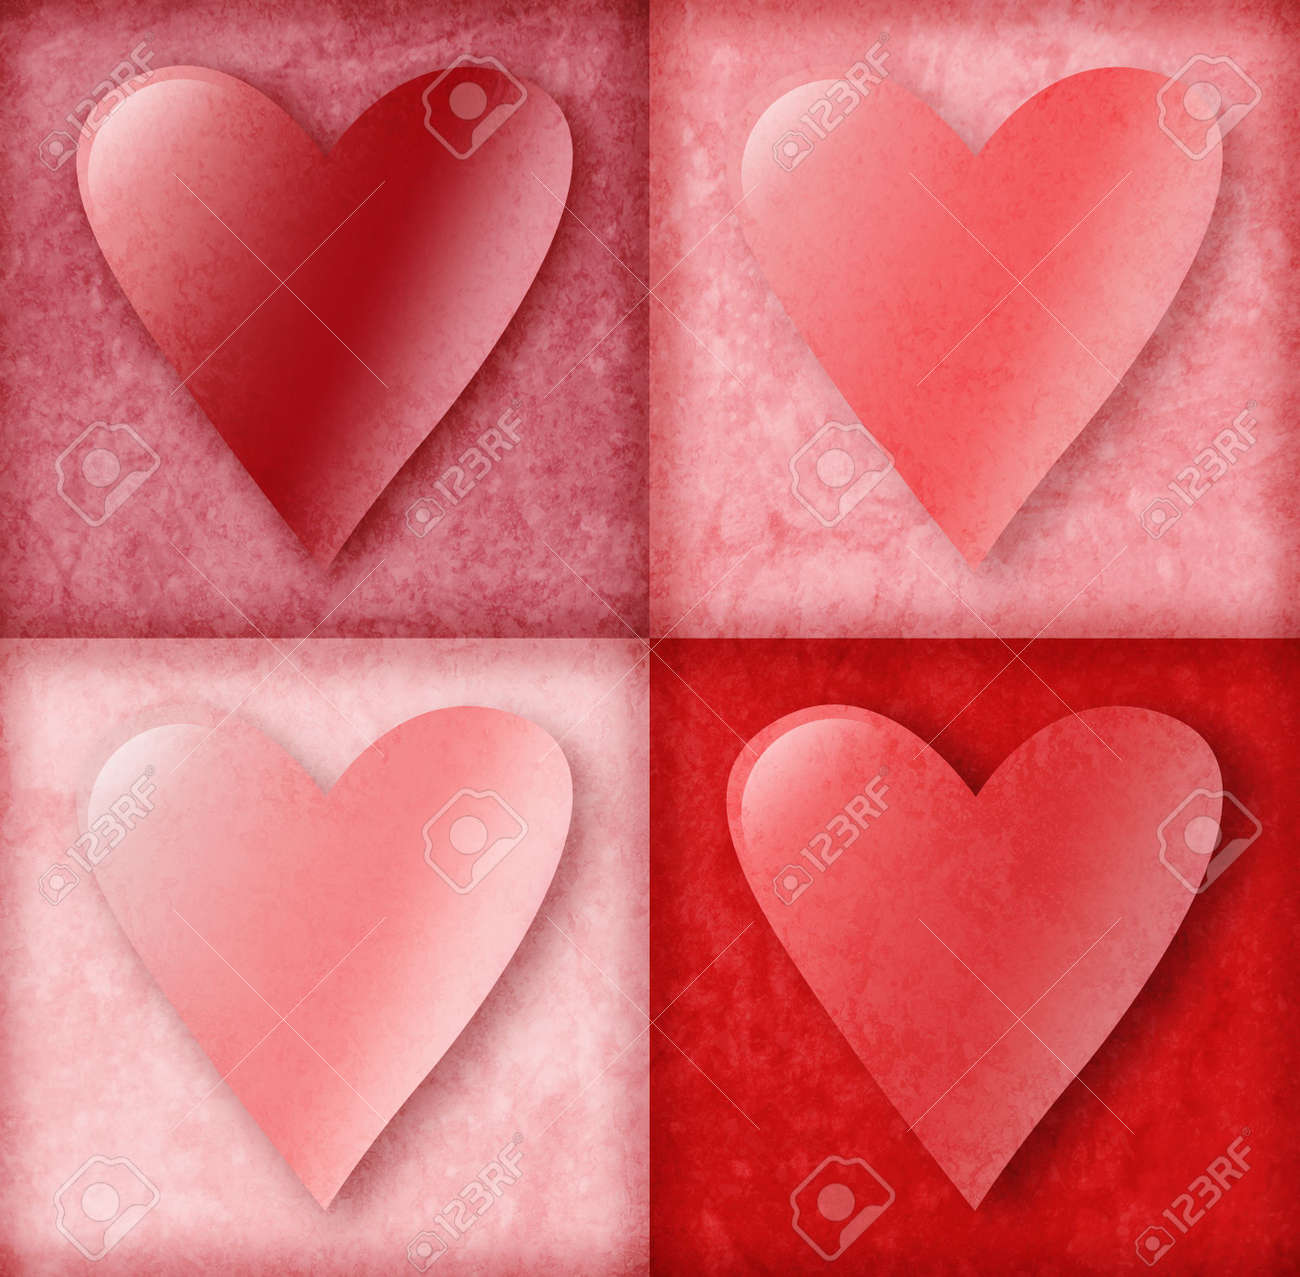 Four pink and red valentine love hearts are in 4 boxes with an old vintage background texture. Use it for love, friendship or anniversary. Stock Photo - 6340518